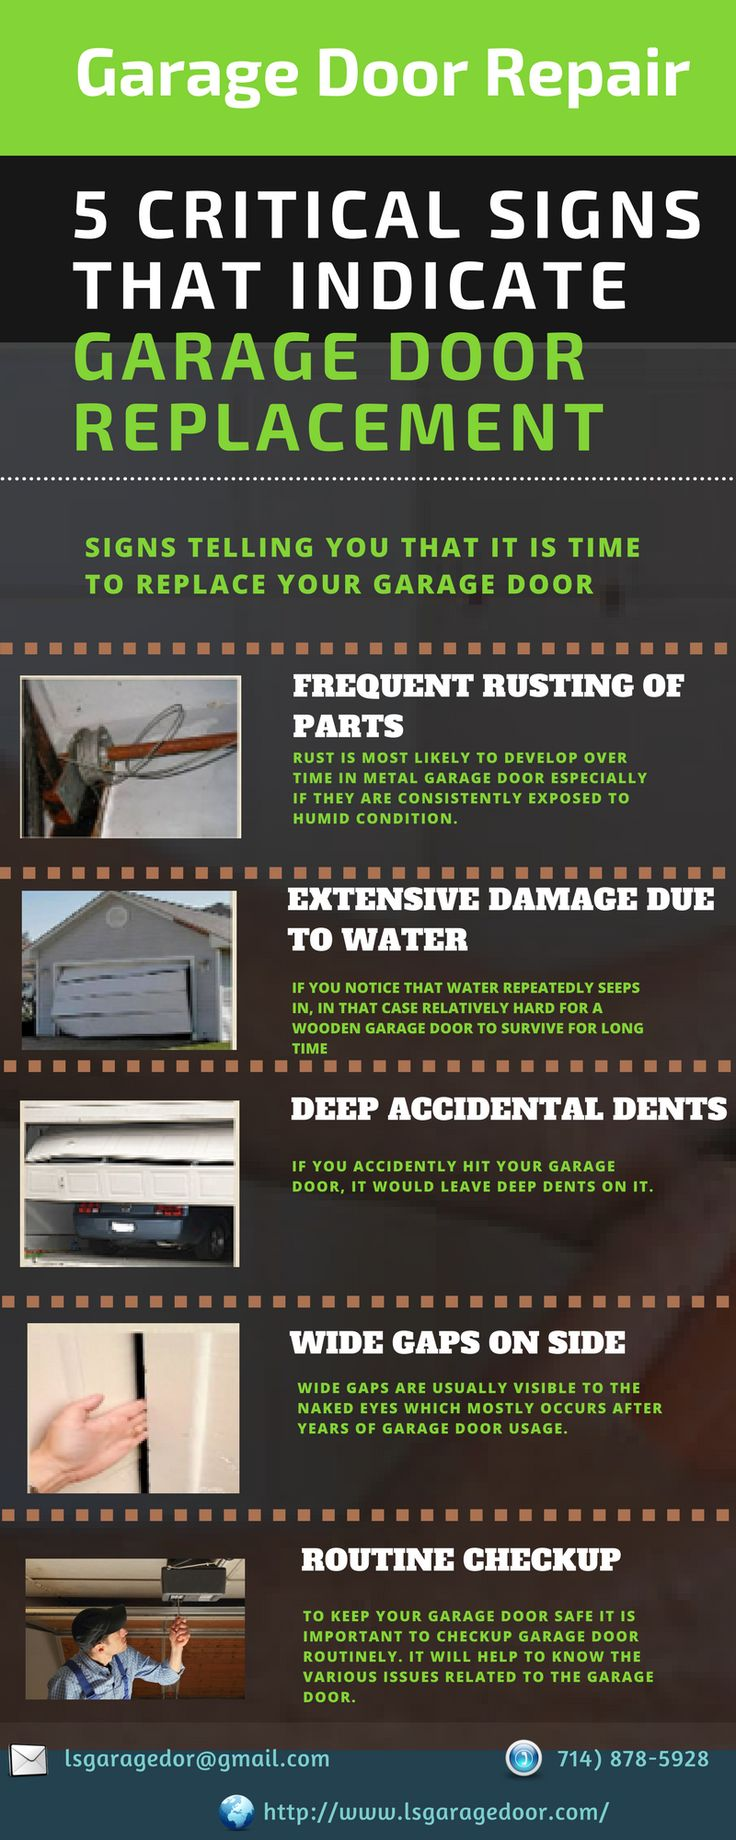 Repair tulsa ok tulsa garage door repair service broken springs - Best 20 Garage Door Opener Repair Ideas On Pinterest Garage Door Opener Door Opener And Garage Door Opener Installation